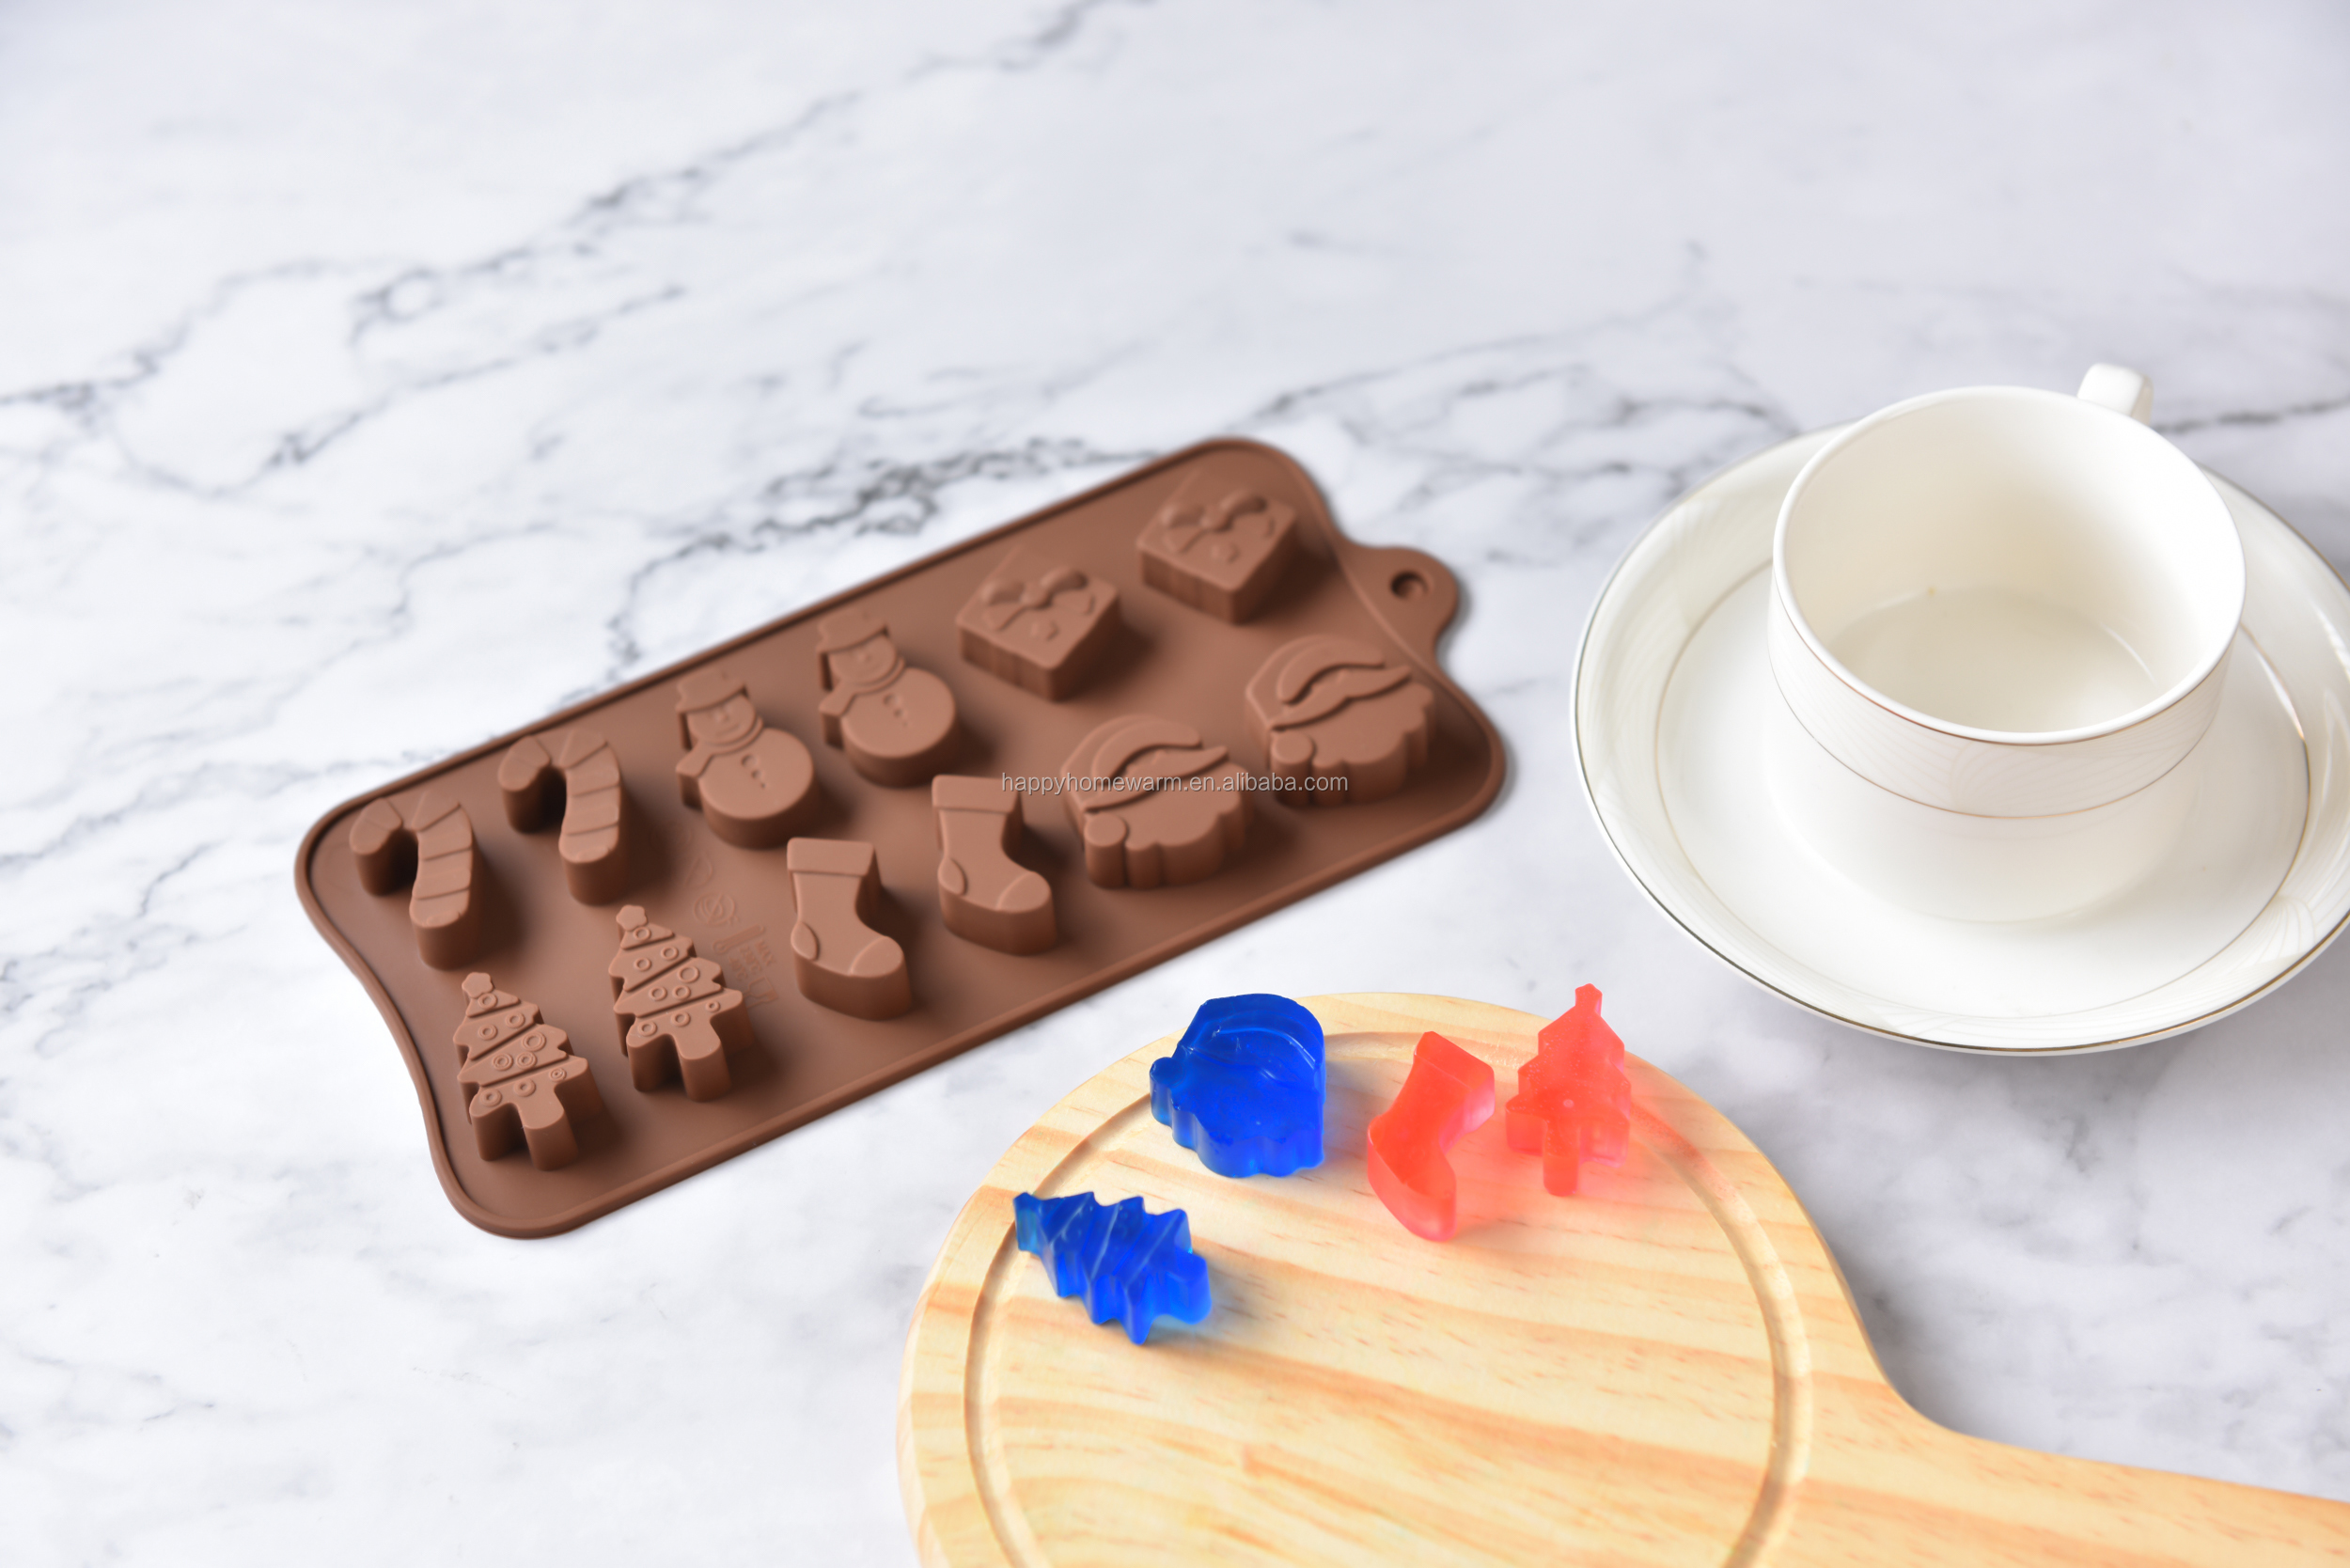 15 Cavities BPA Free China Flower Shape Jelly Baking Mold Cake Pan Ice Candy Soap Tray Silicone Bakeware Chocolate Mould